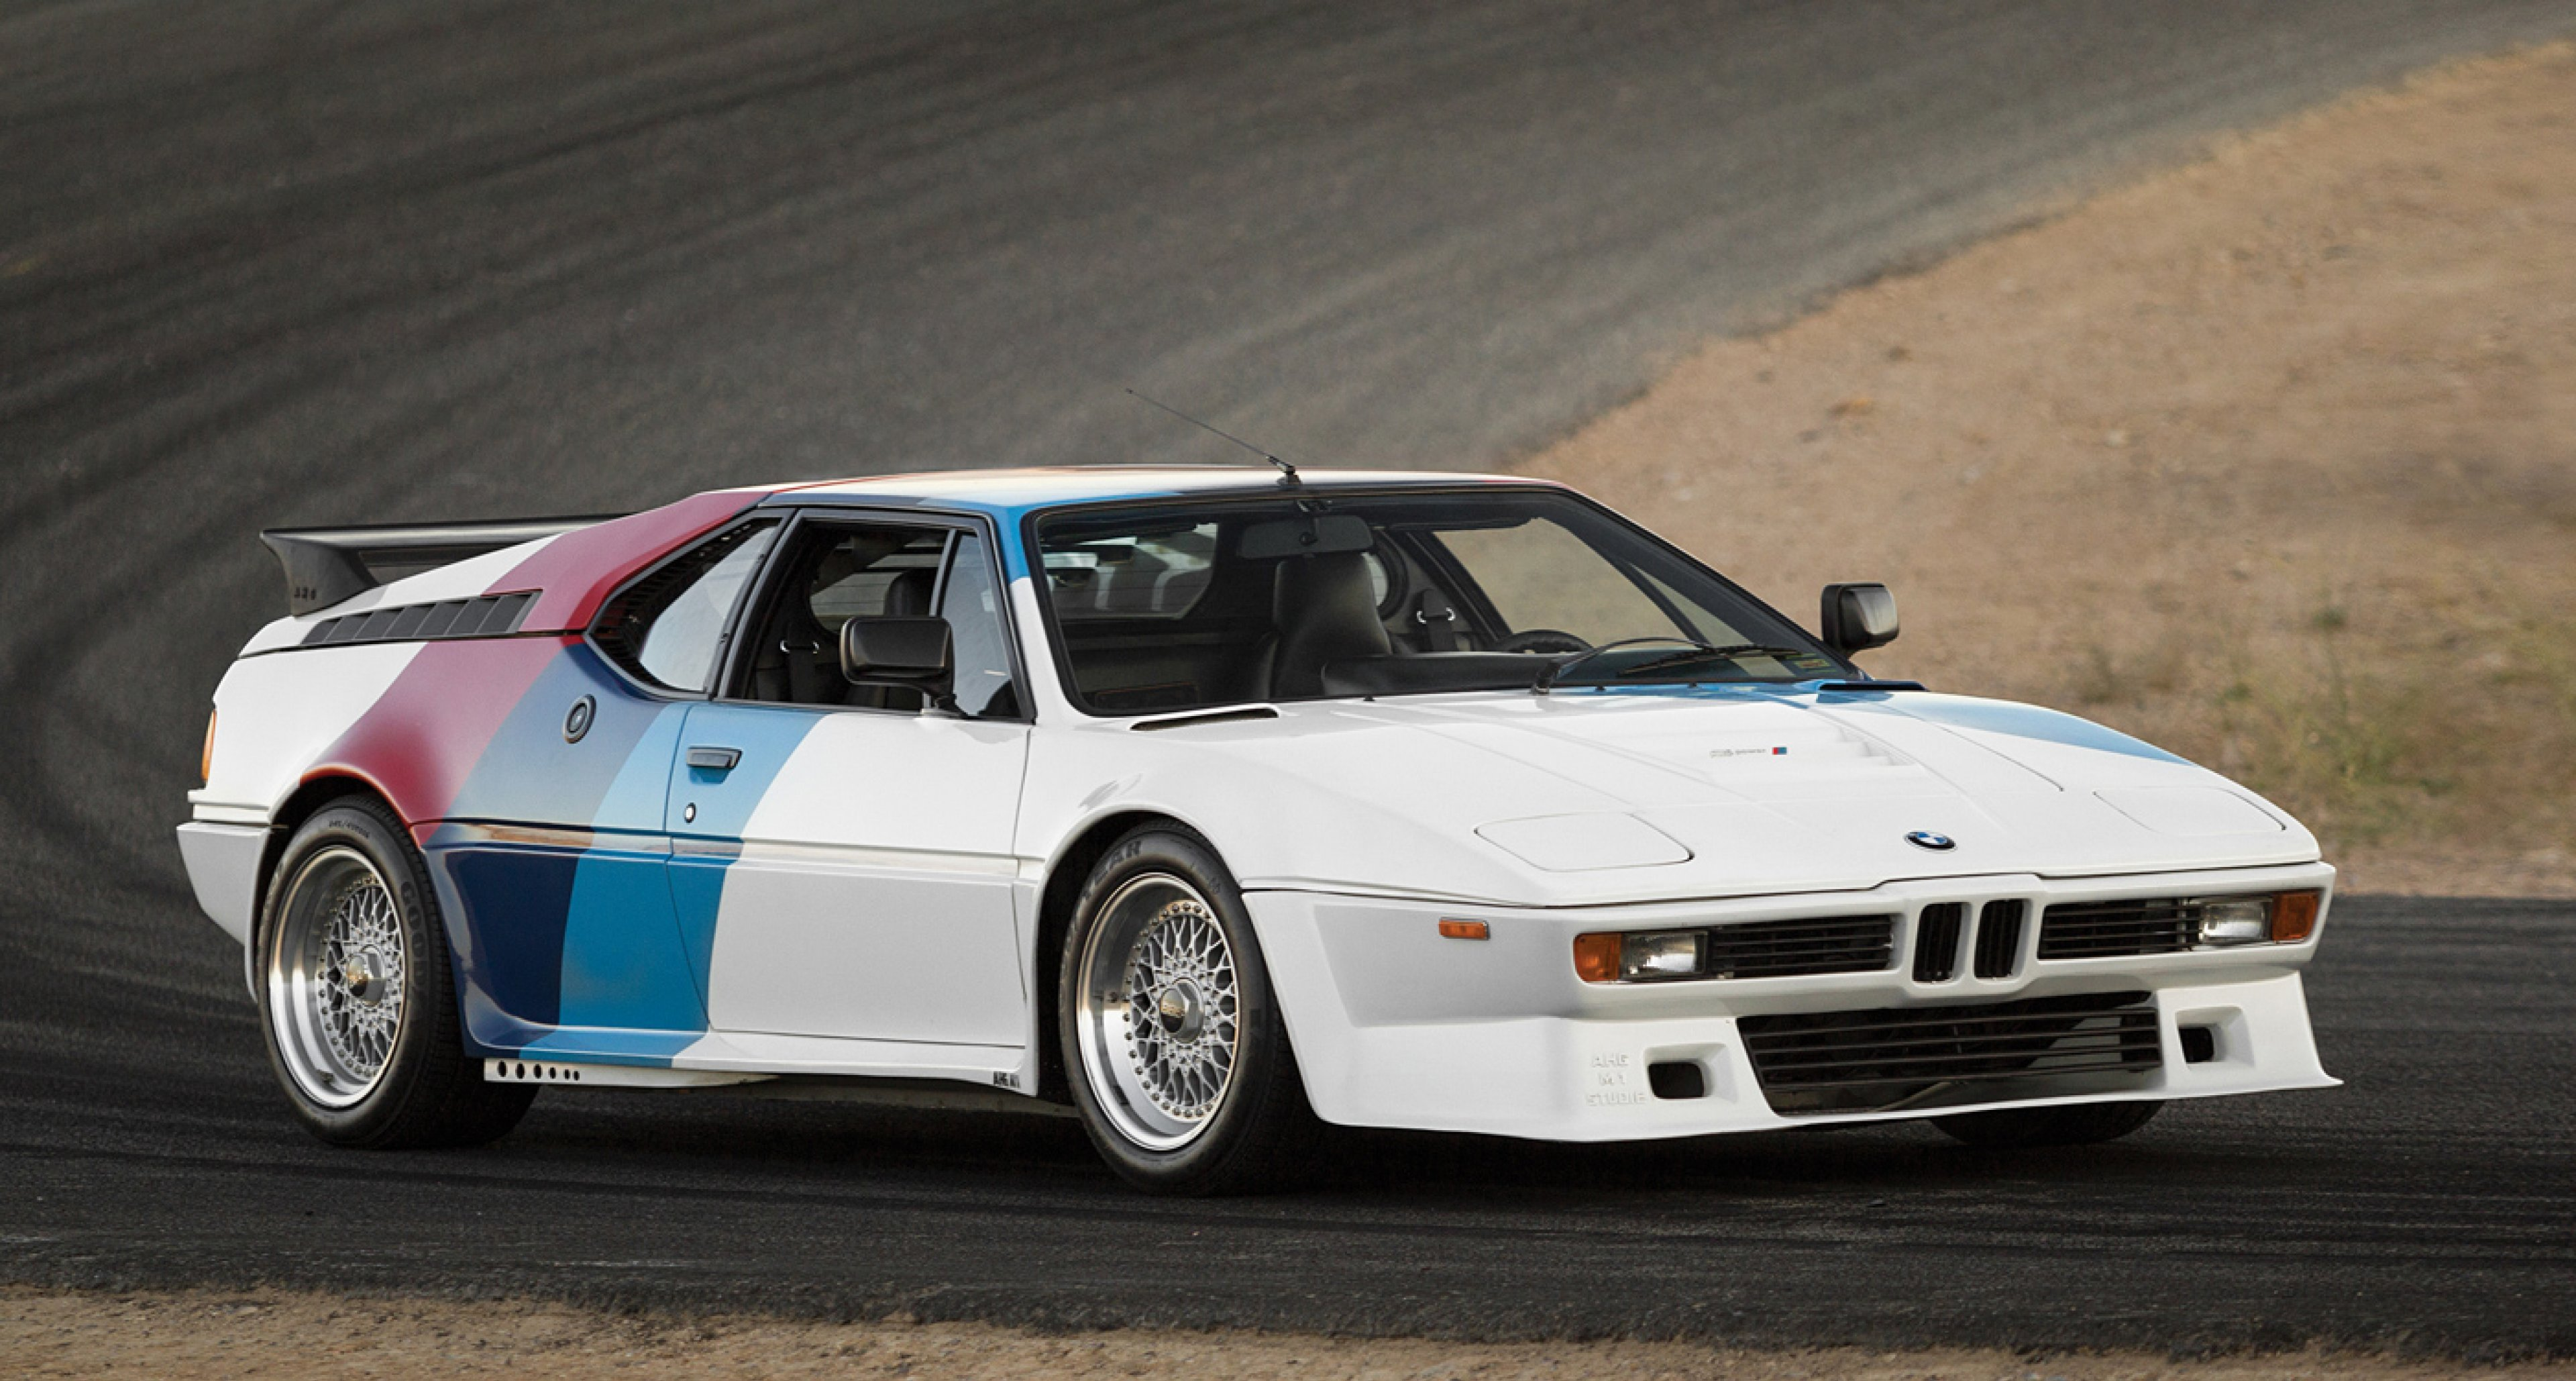 Bmw M1 For Sale >> Sleeping Supercar Why The Bmw M1 Could Take The Market By Storm